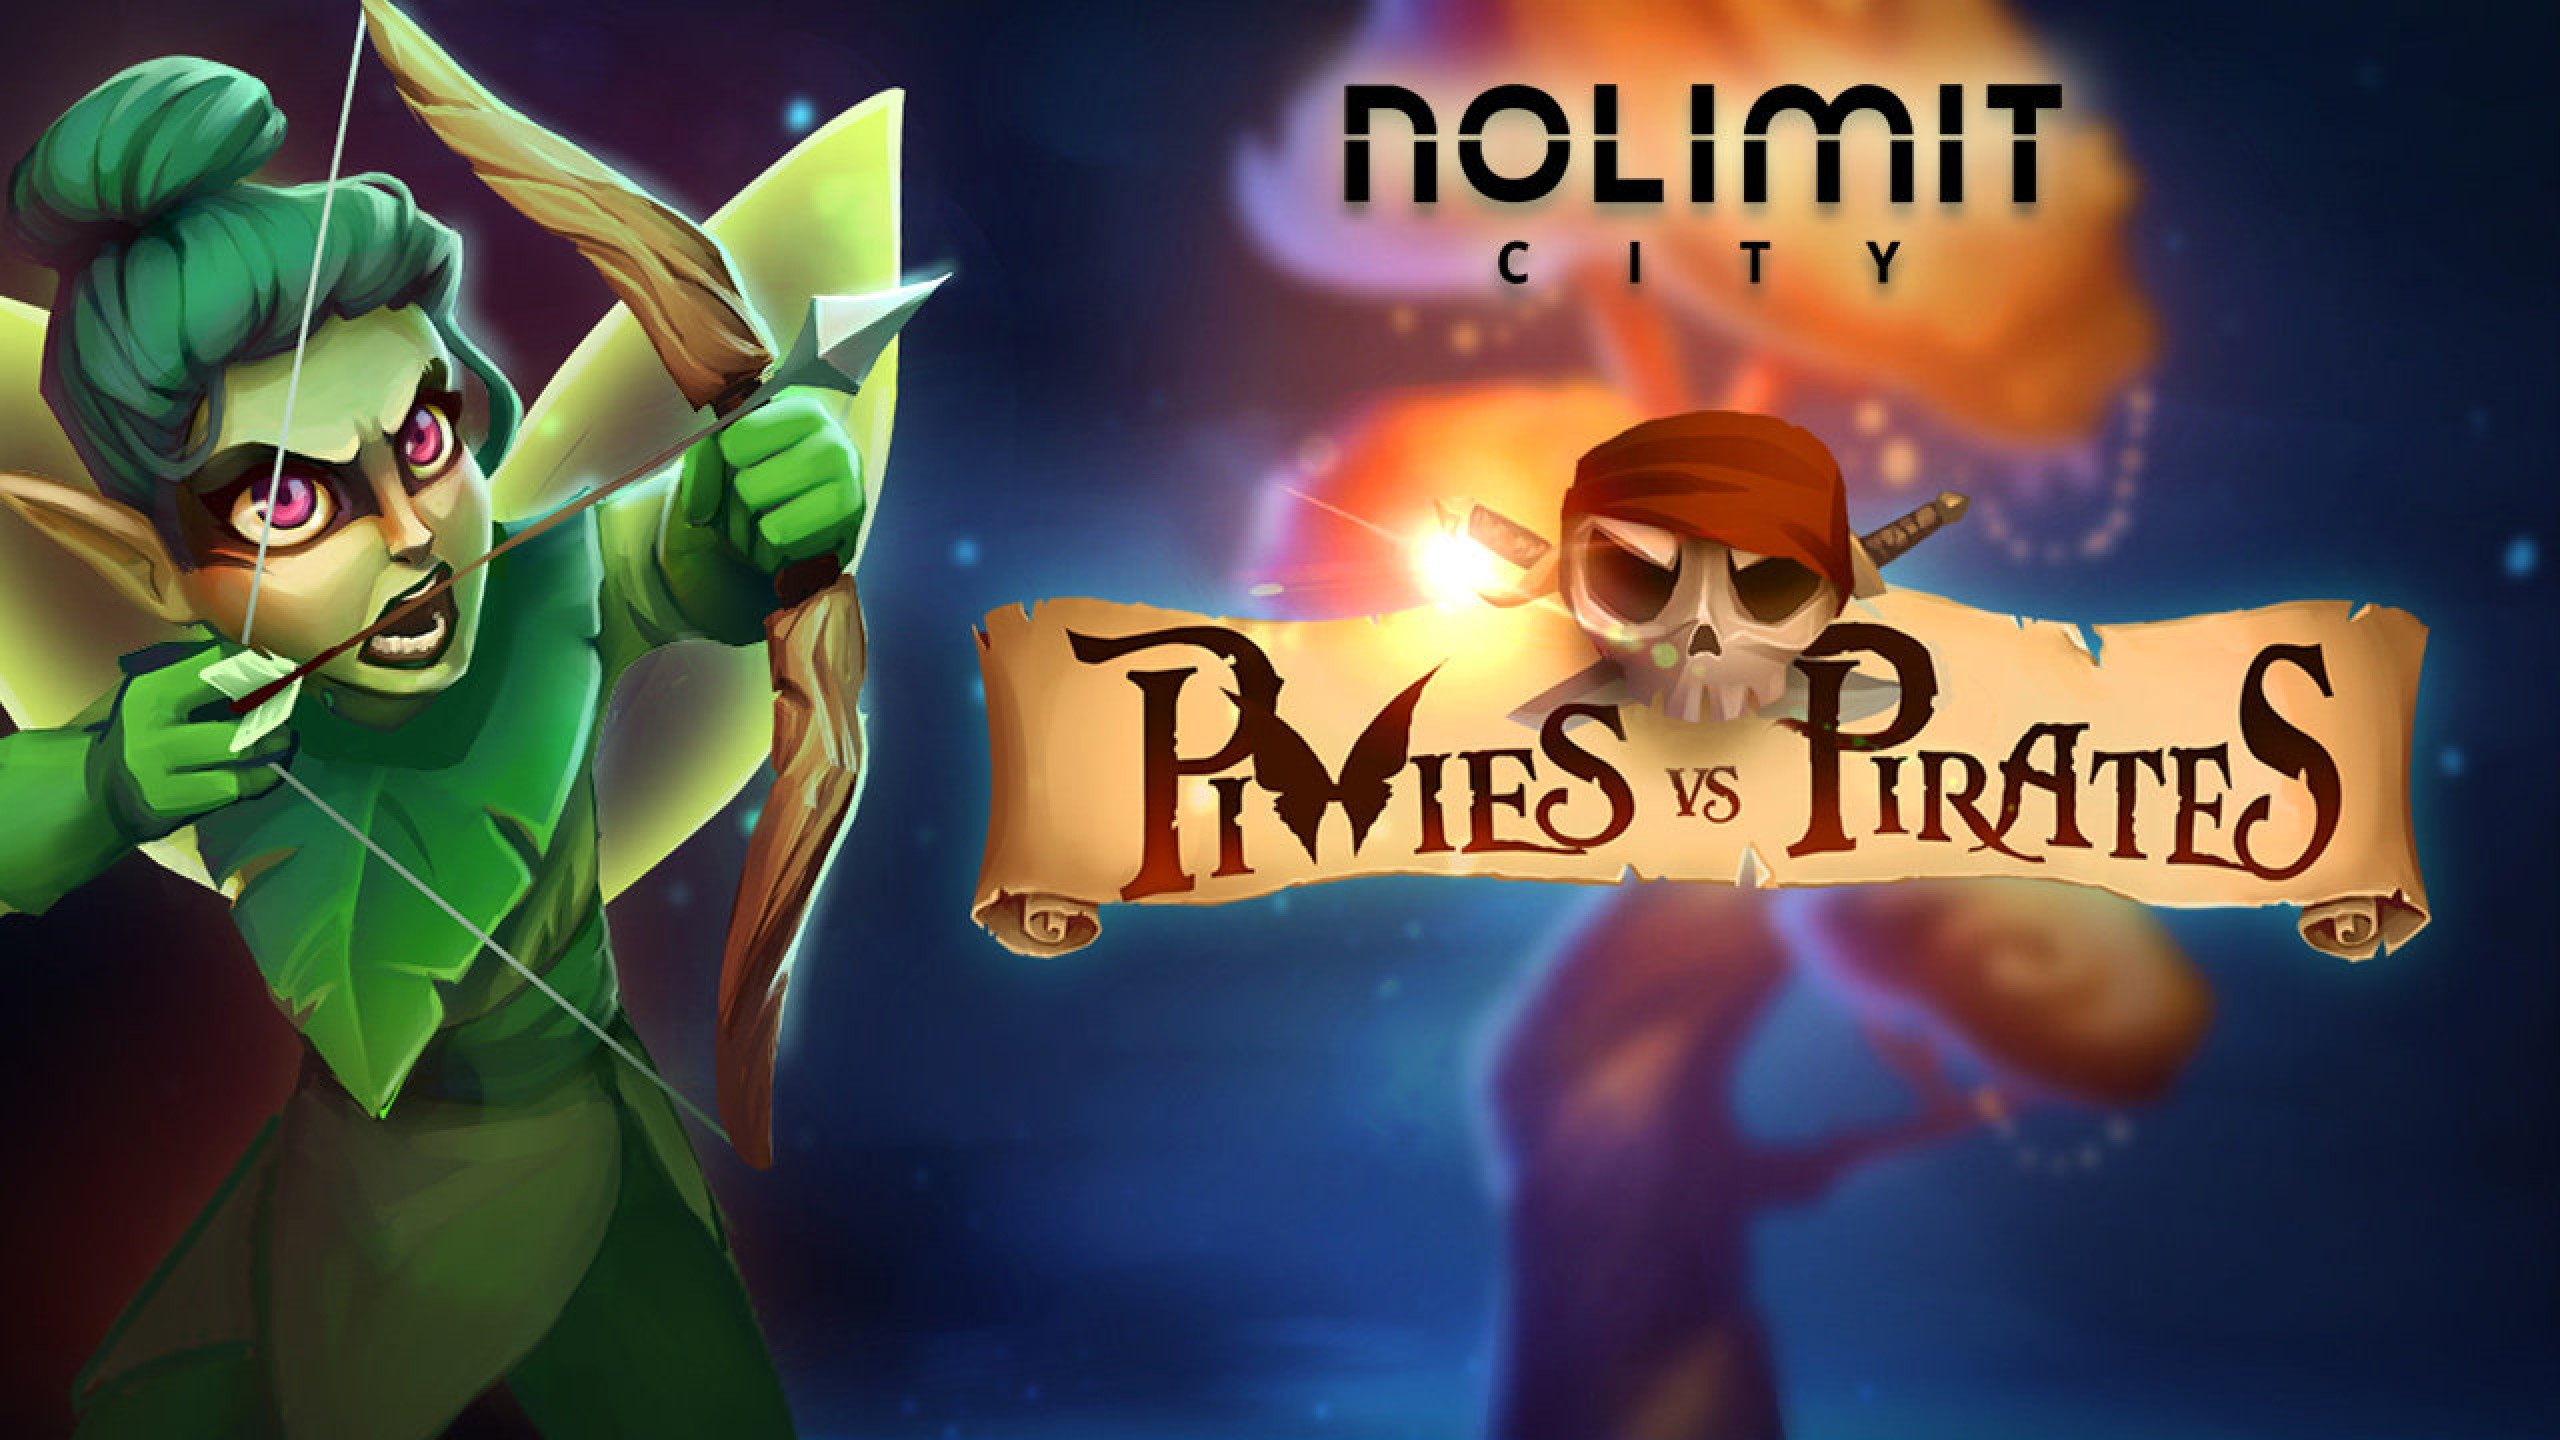 Se Pixies Vs Pirates Online Slot Demo Game, Nolimit City